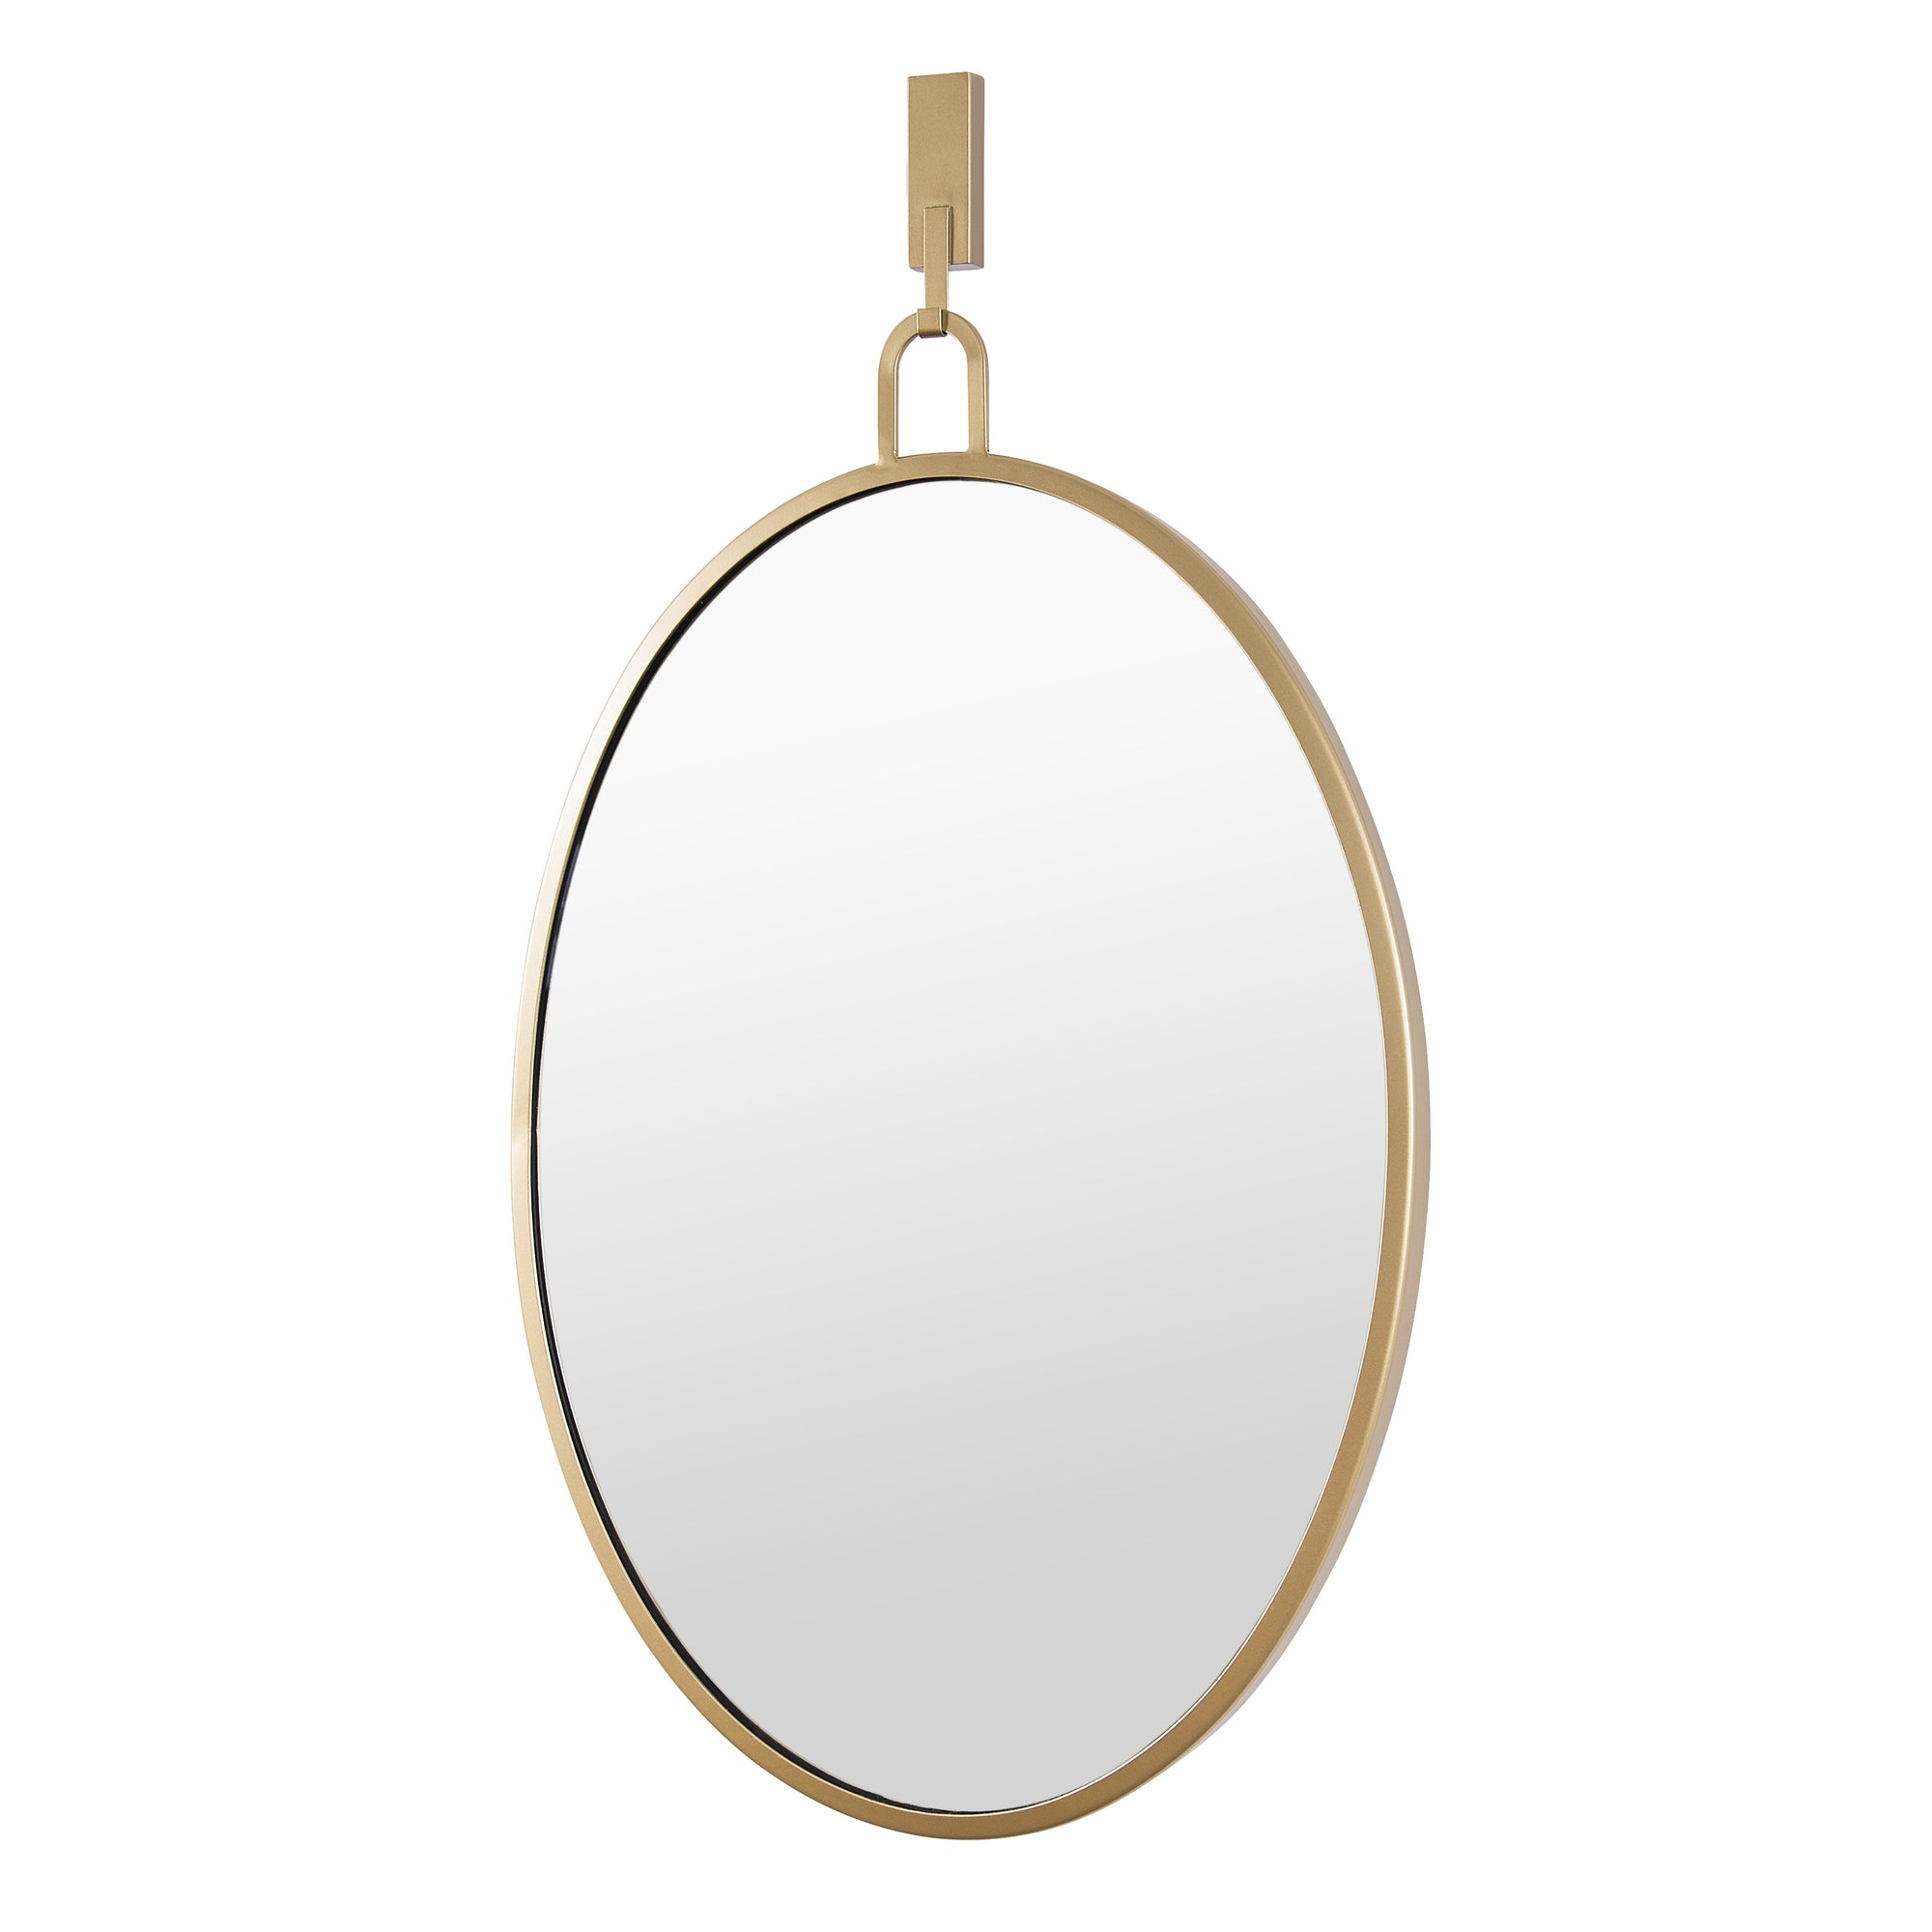 Stopwatch 22x30 Oval Powder Room Mirror - Gold  4DMI0111